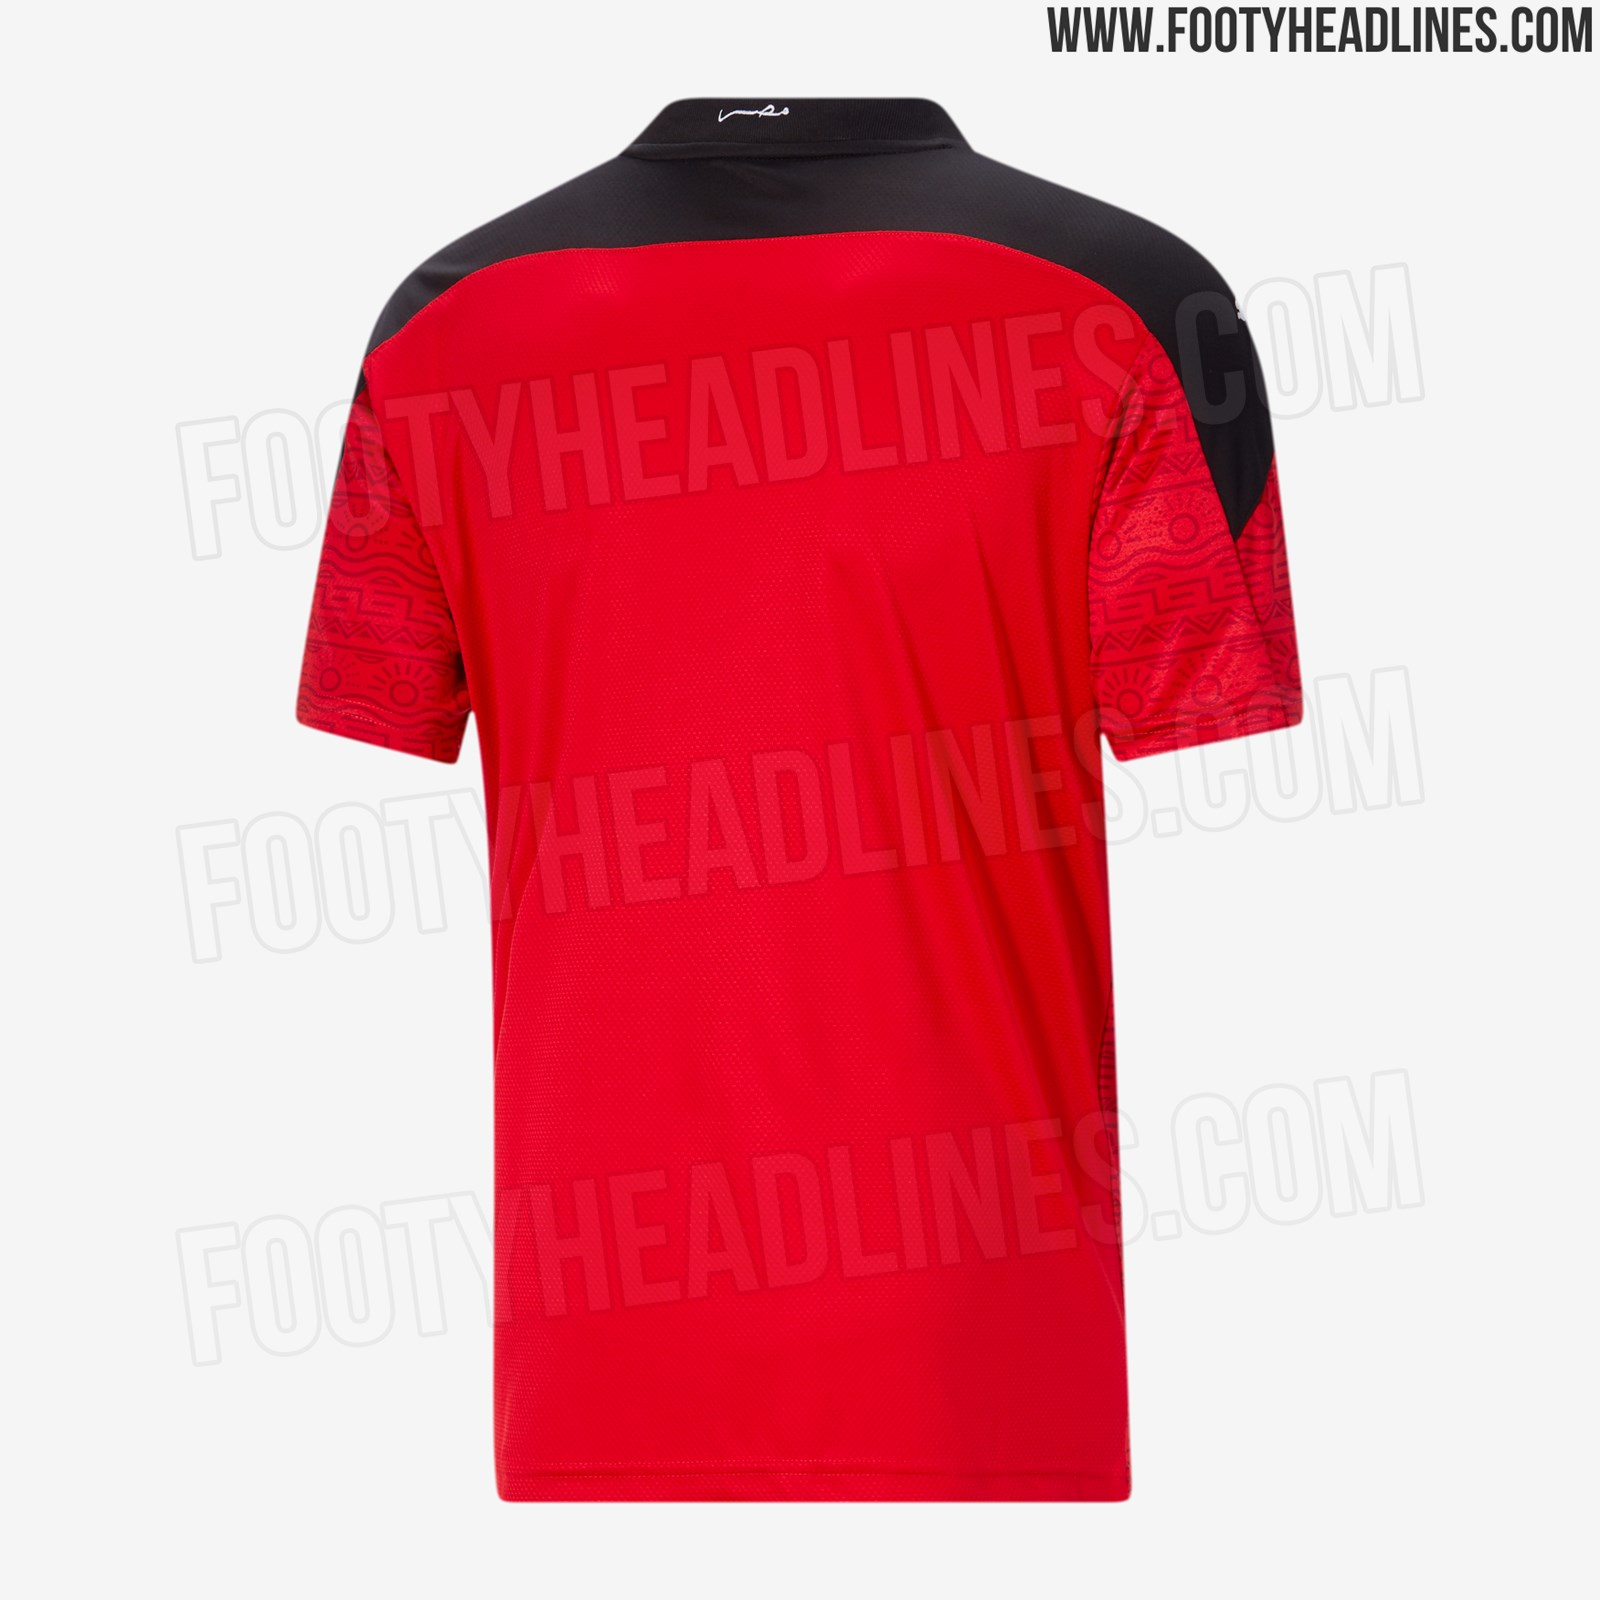 egypt-2020-home-away-kits-3.jpg